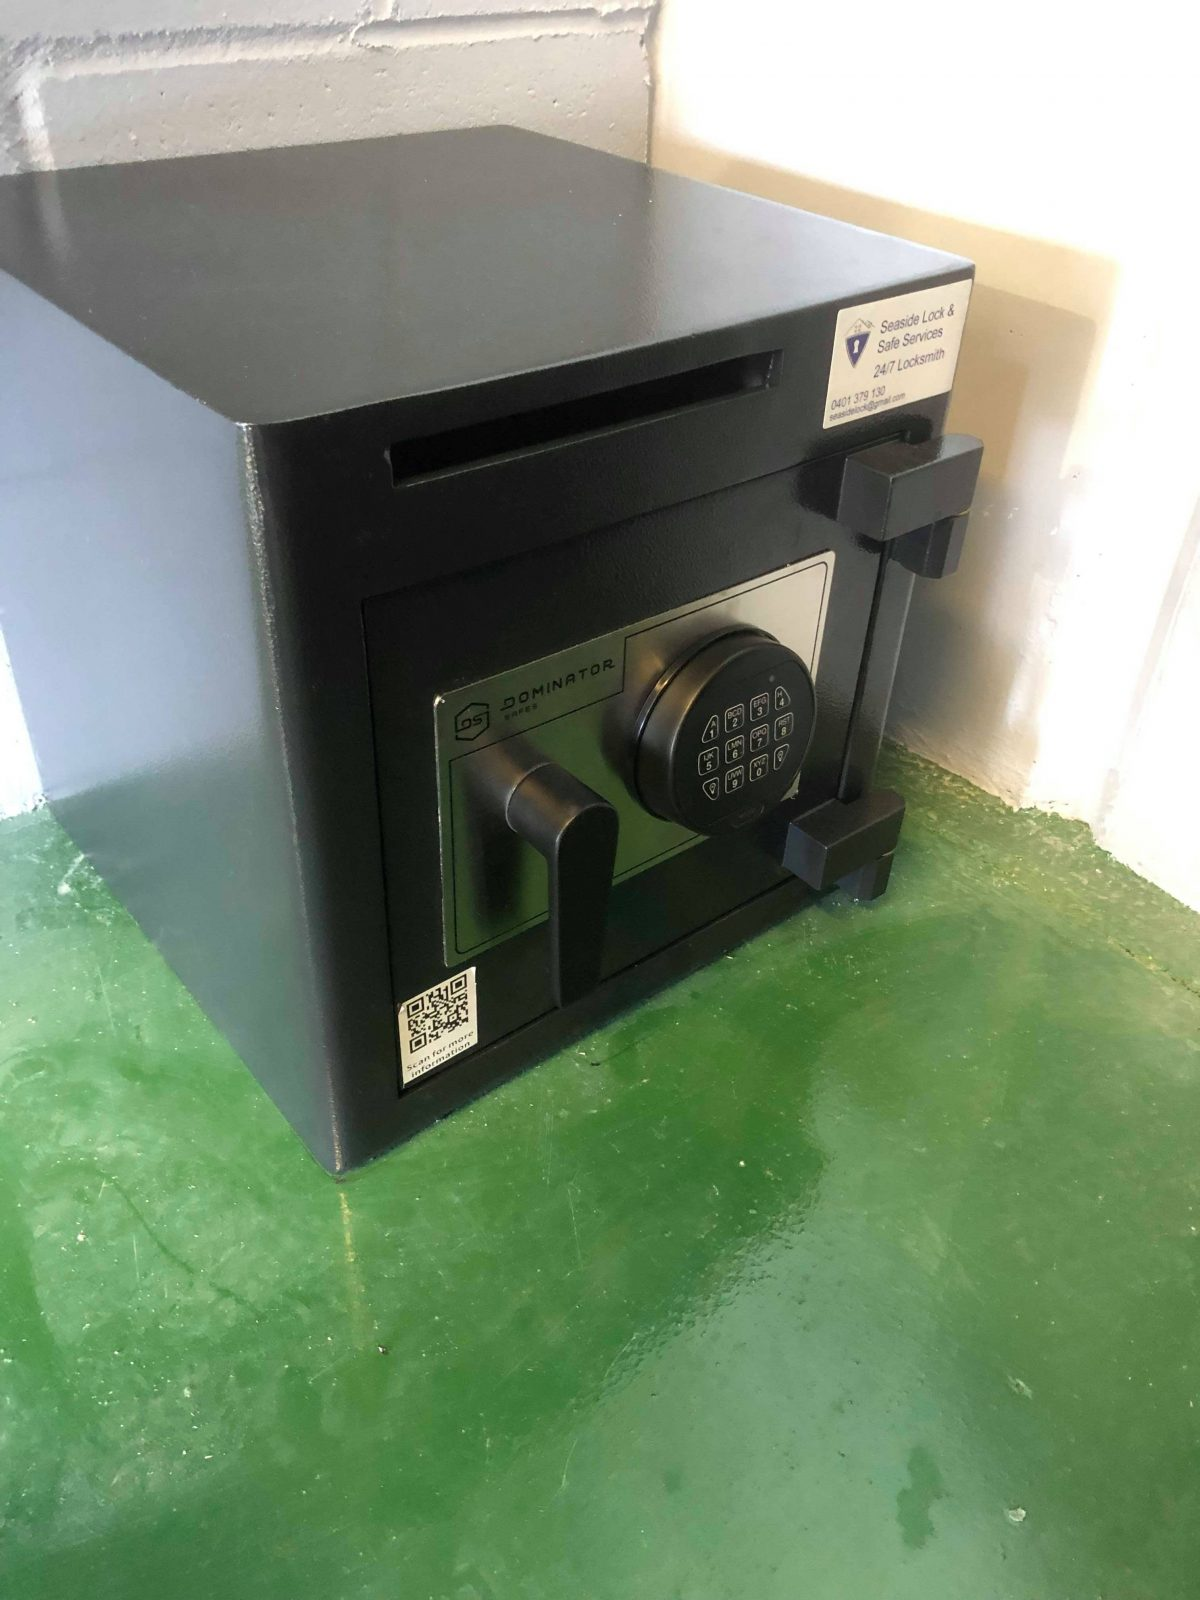 A new deposit safe installation for a new business.